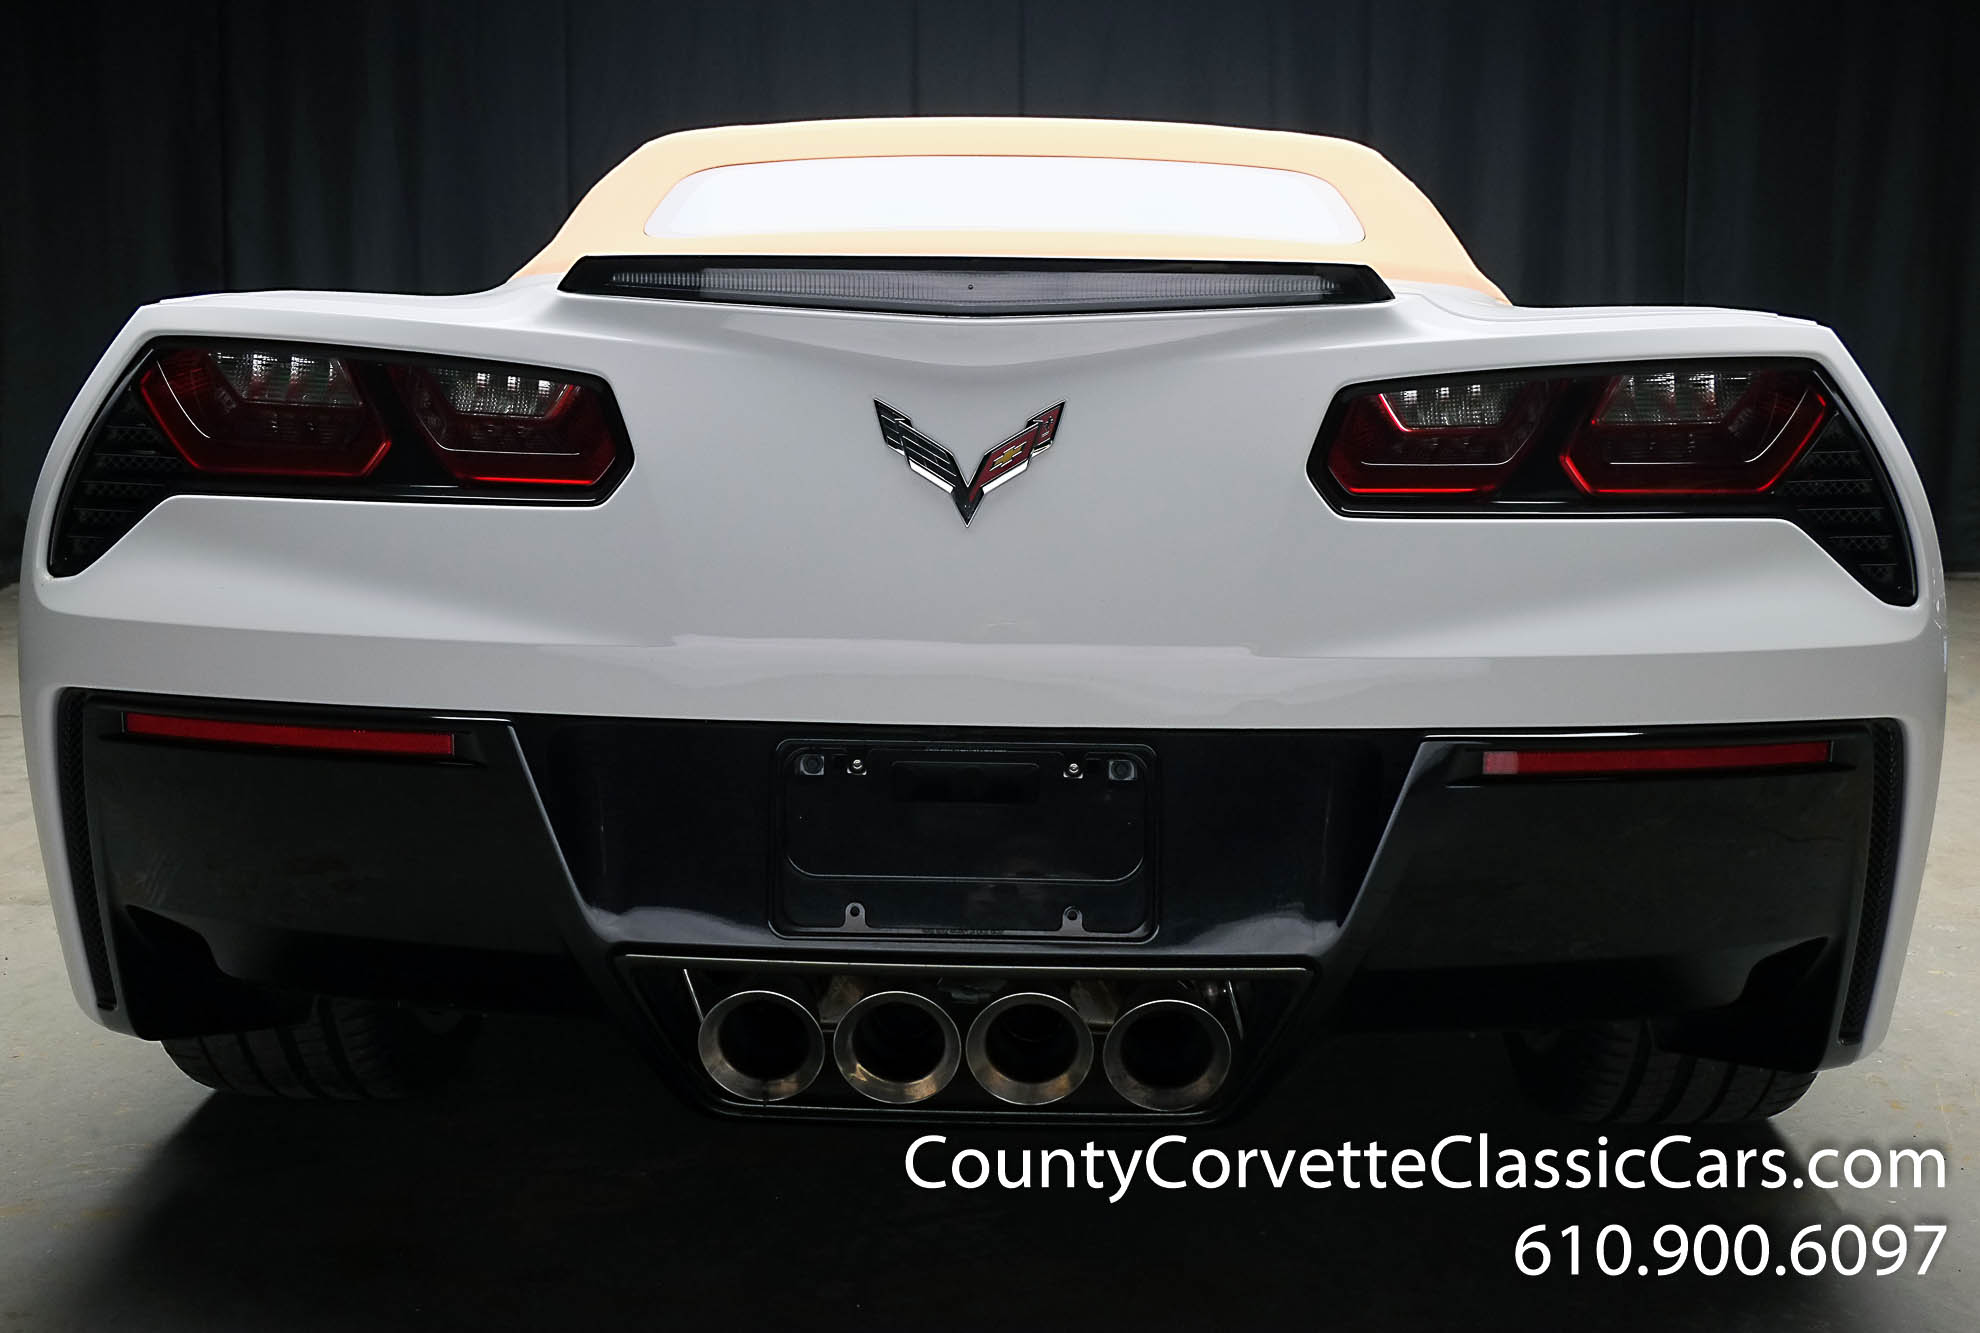 2014-Corvette-Stingray-Convertible-28.jpg